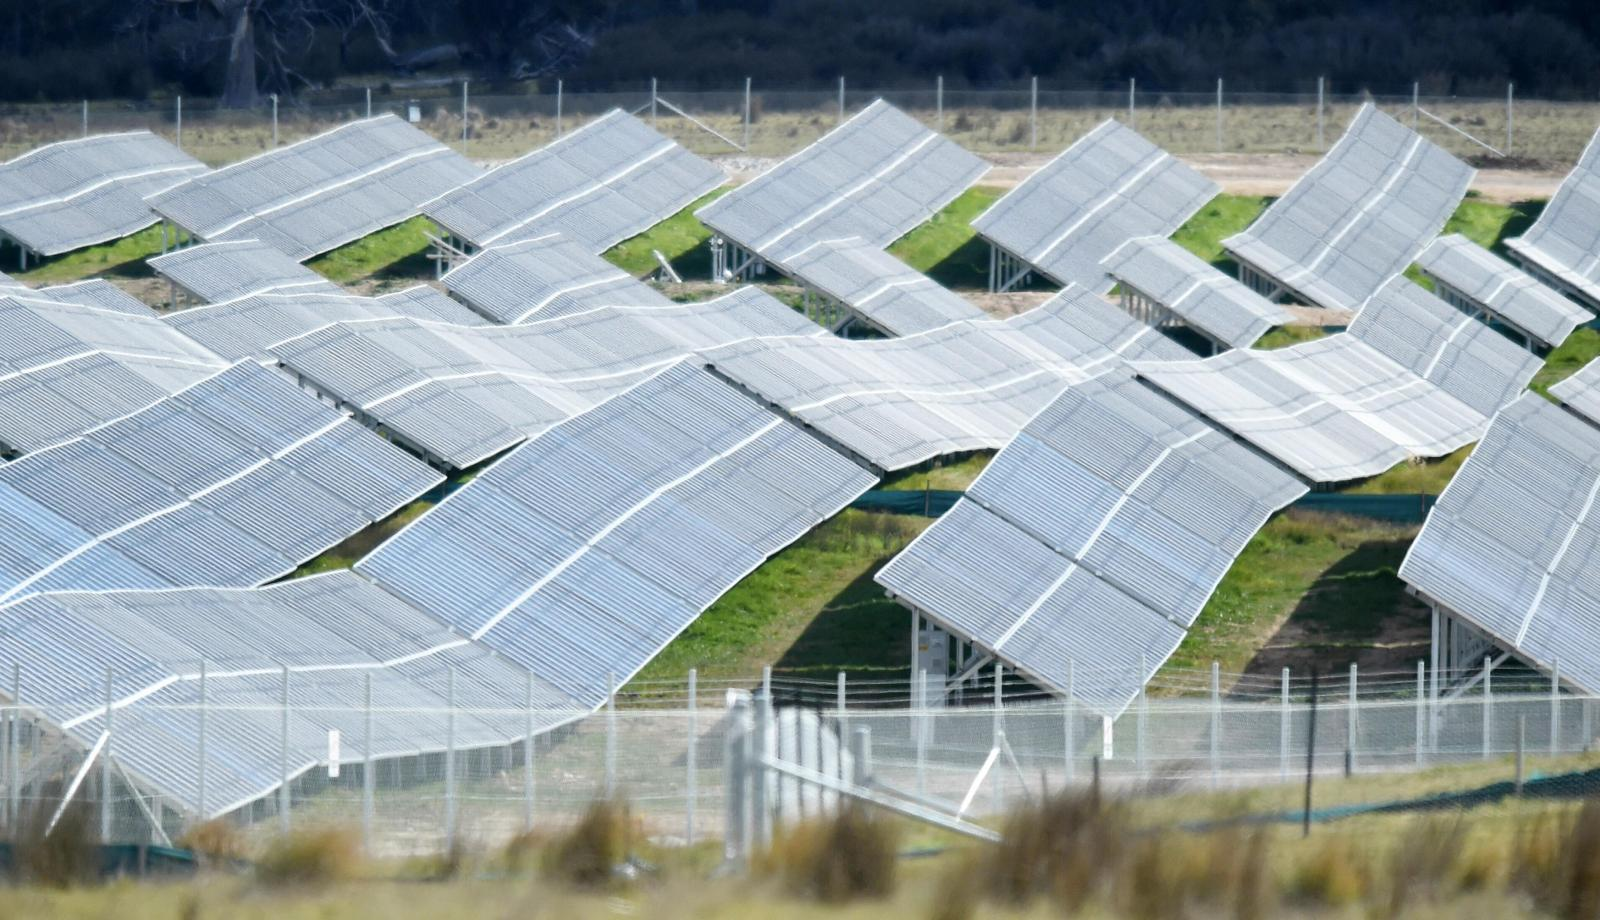 Potential solar farm- a game changer